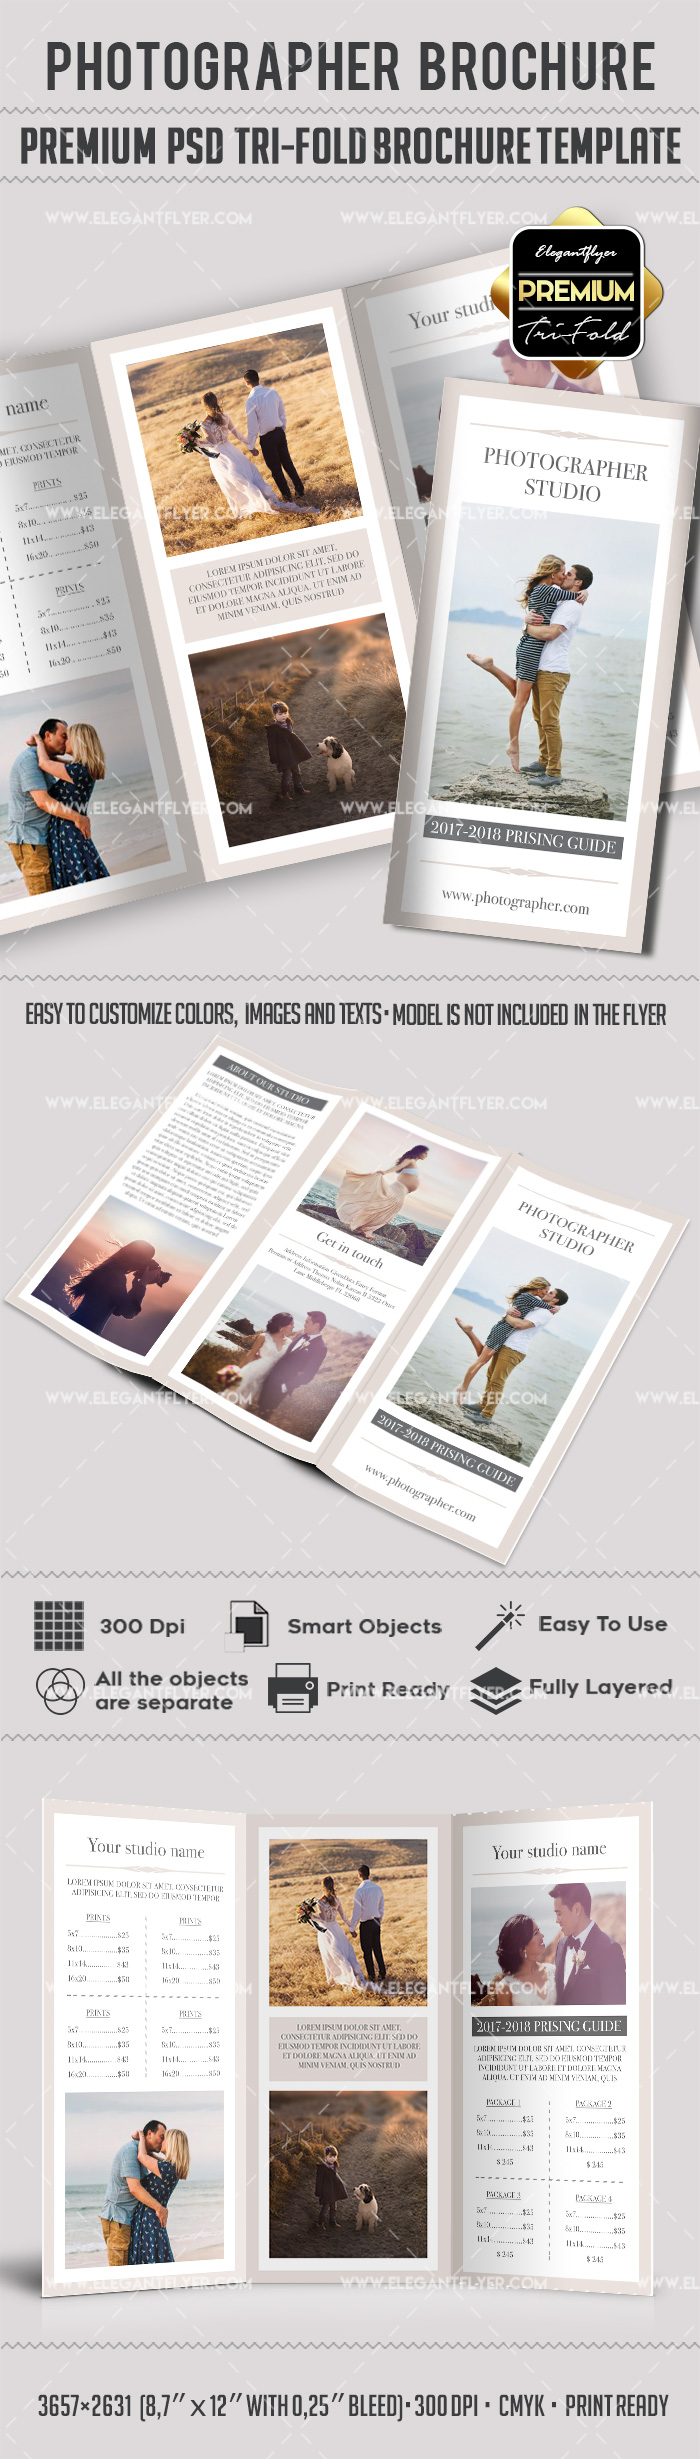 photography brochure templates free tri fold brochure photography template free by elegantflyer